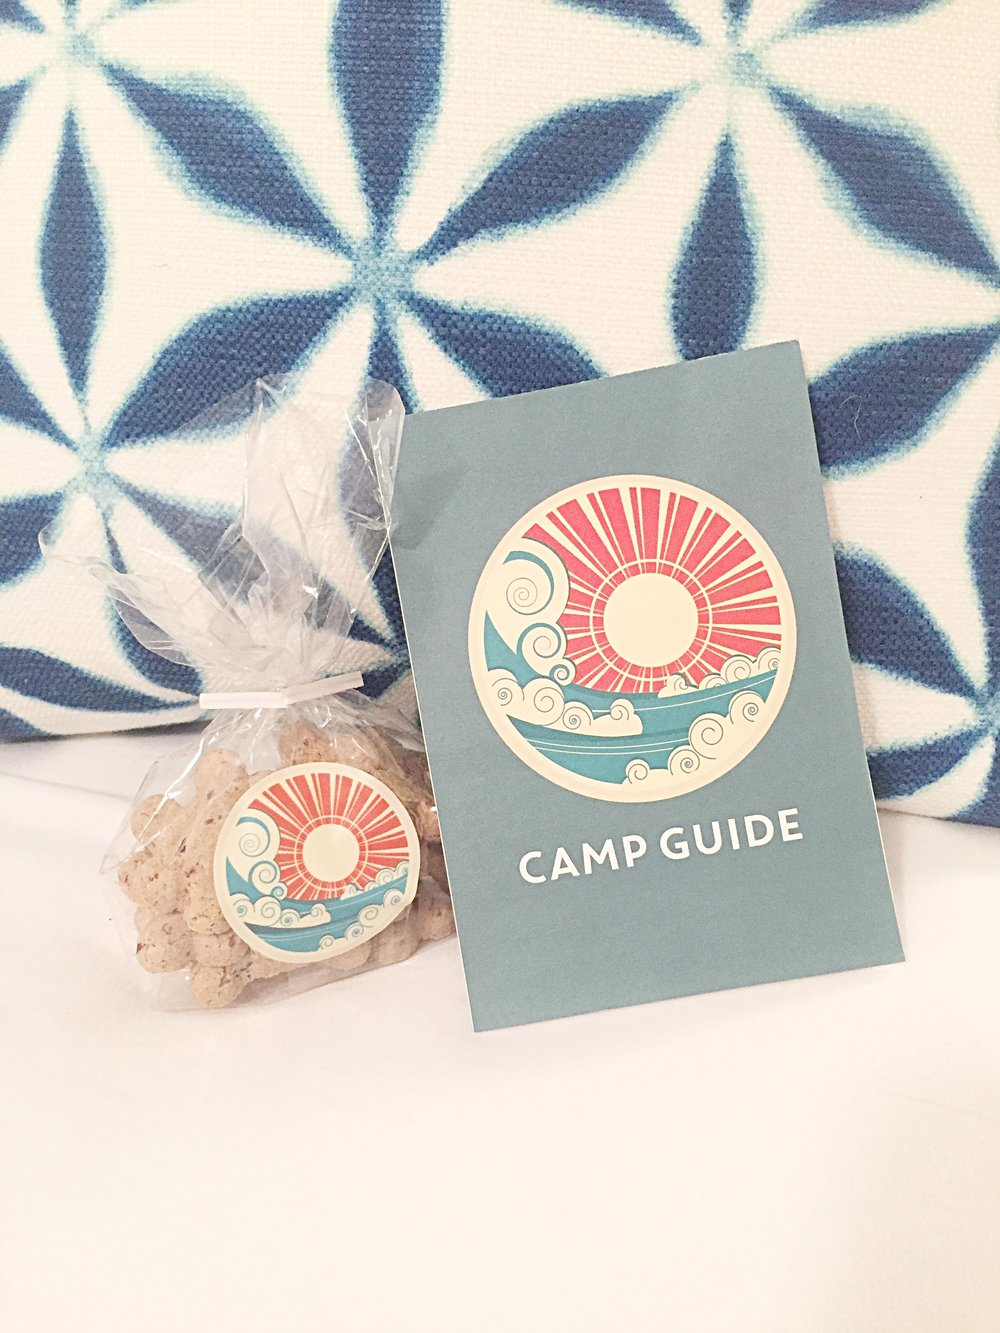 Welcome kit from Summercamp